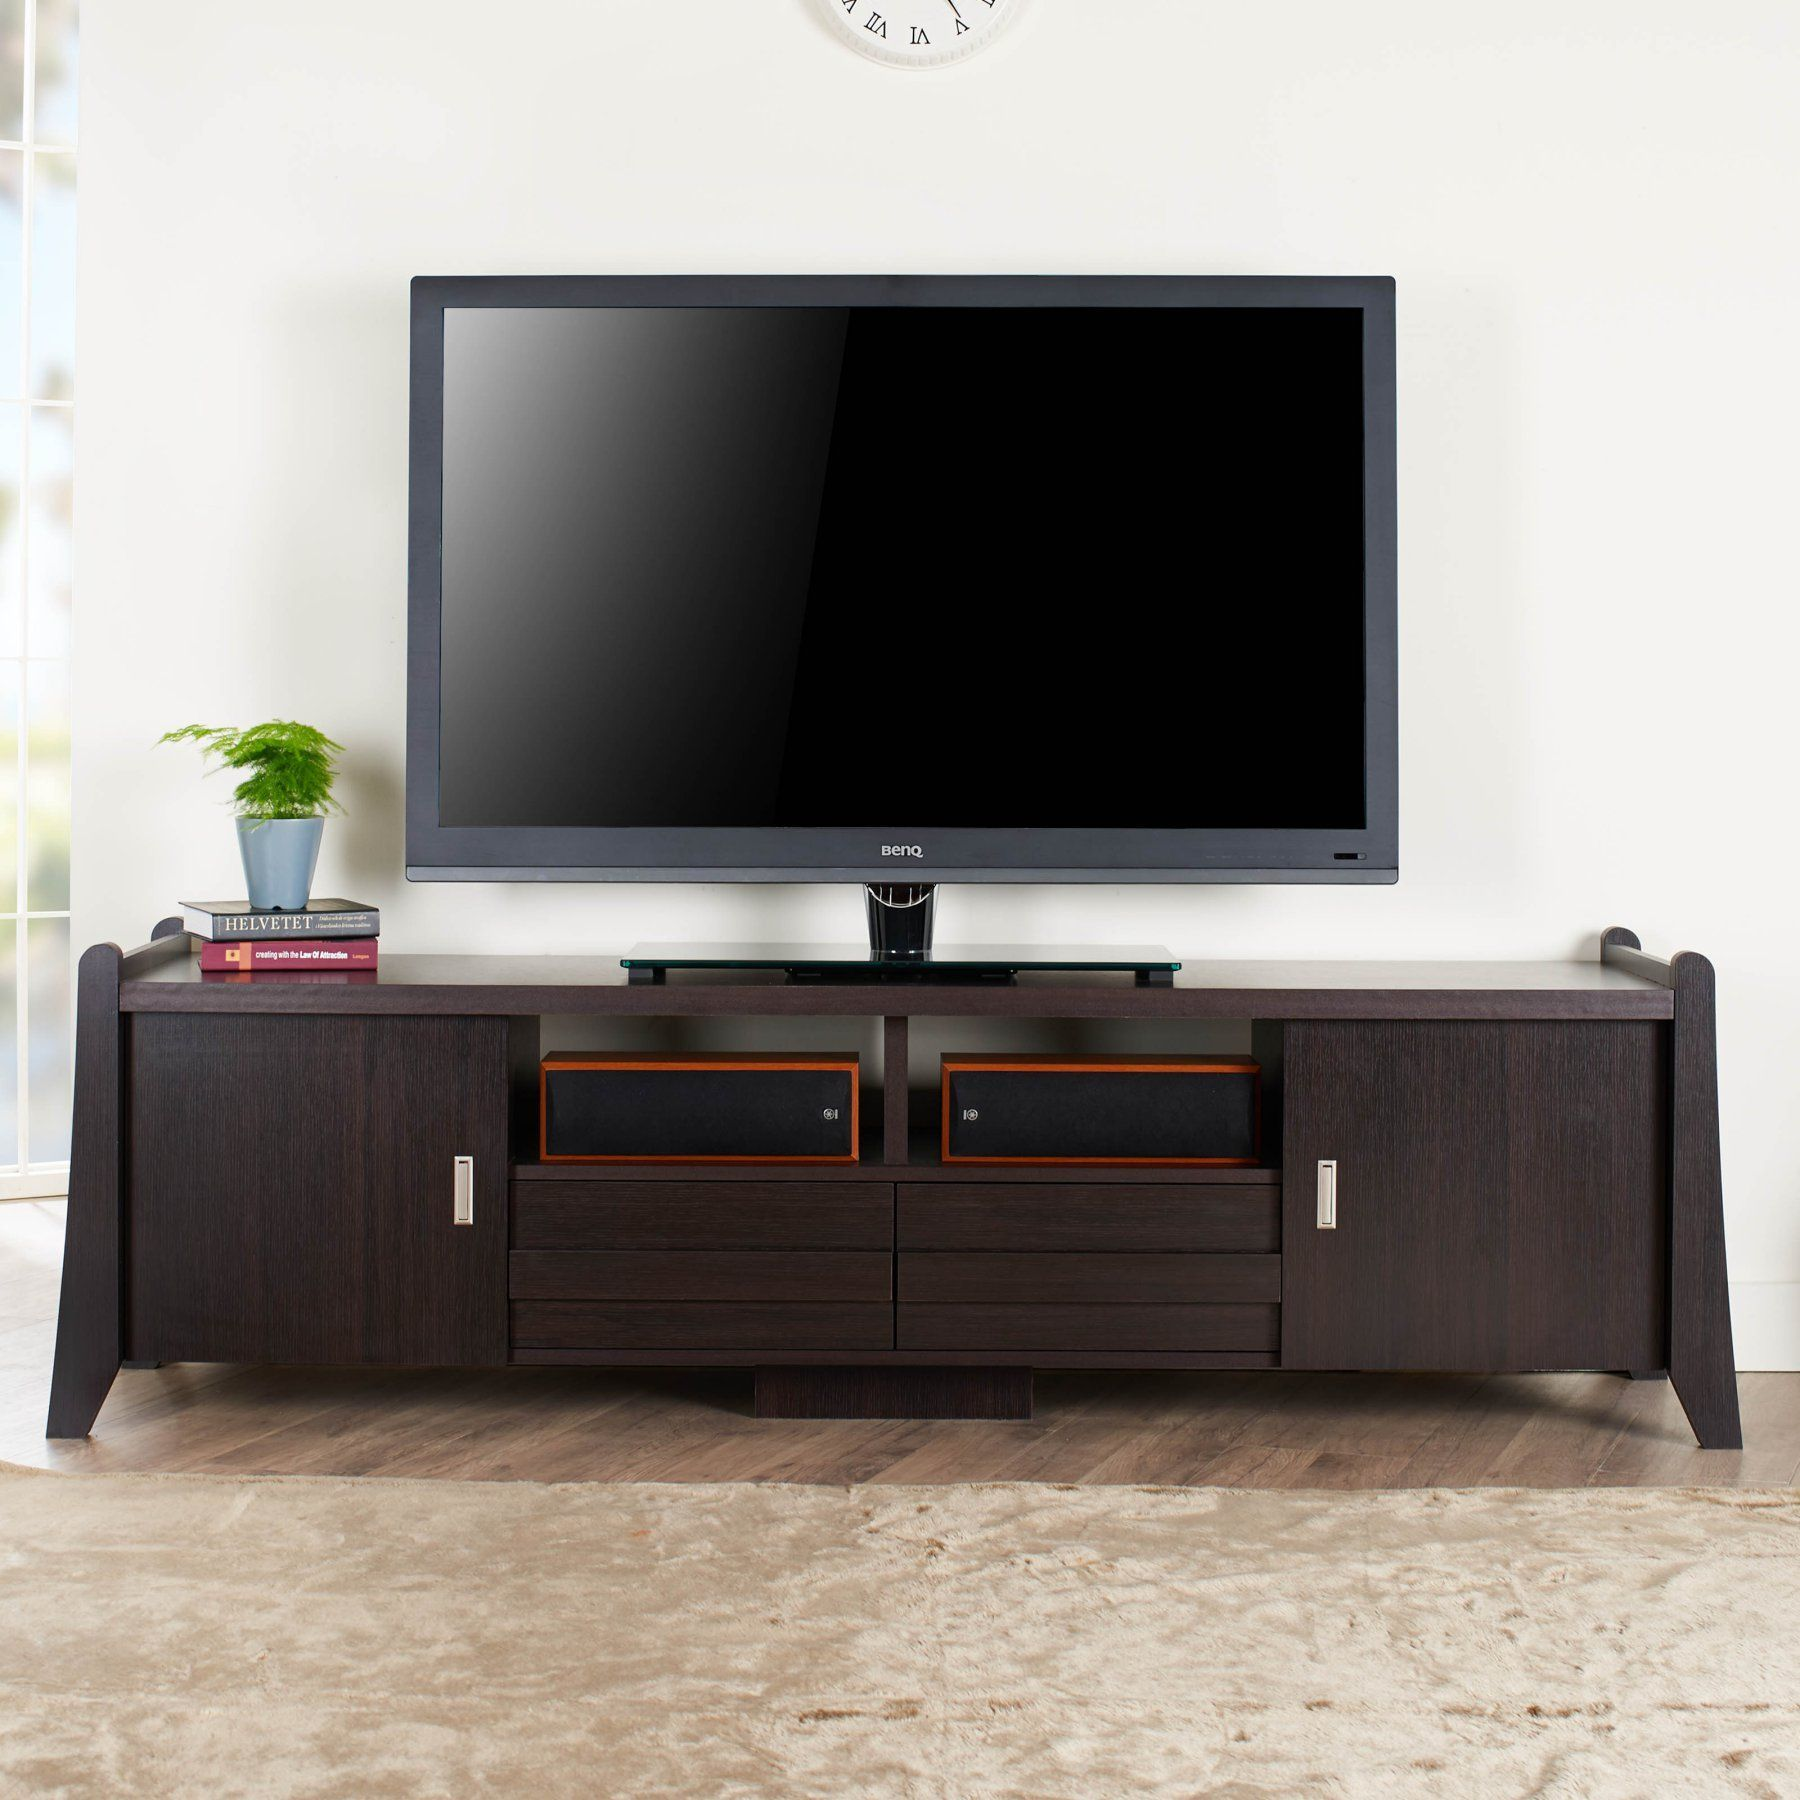 Furniture of America Rialto 70 in TV